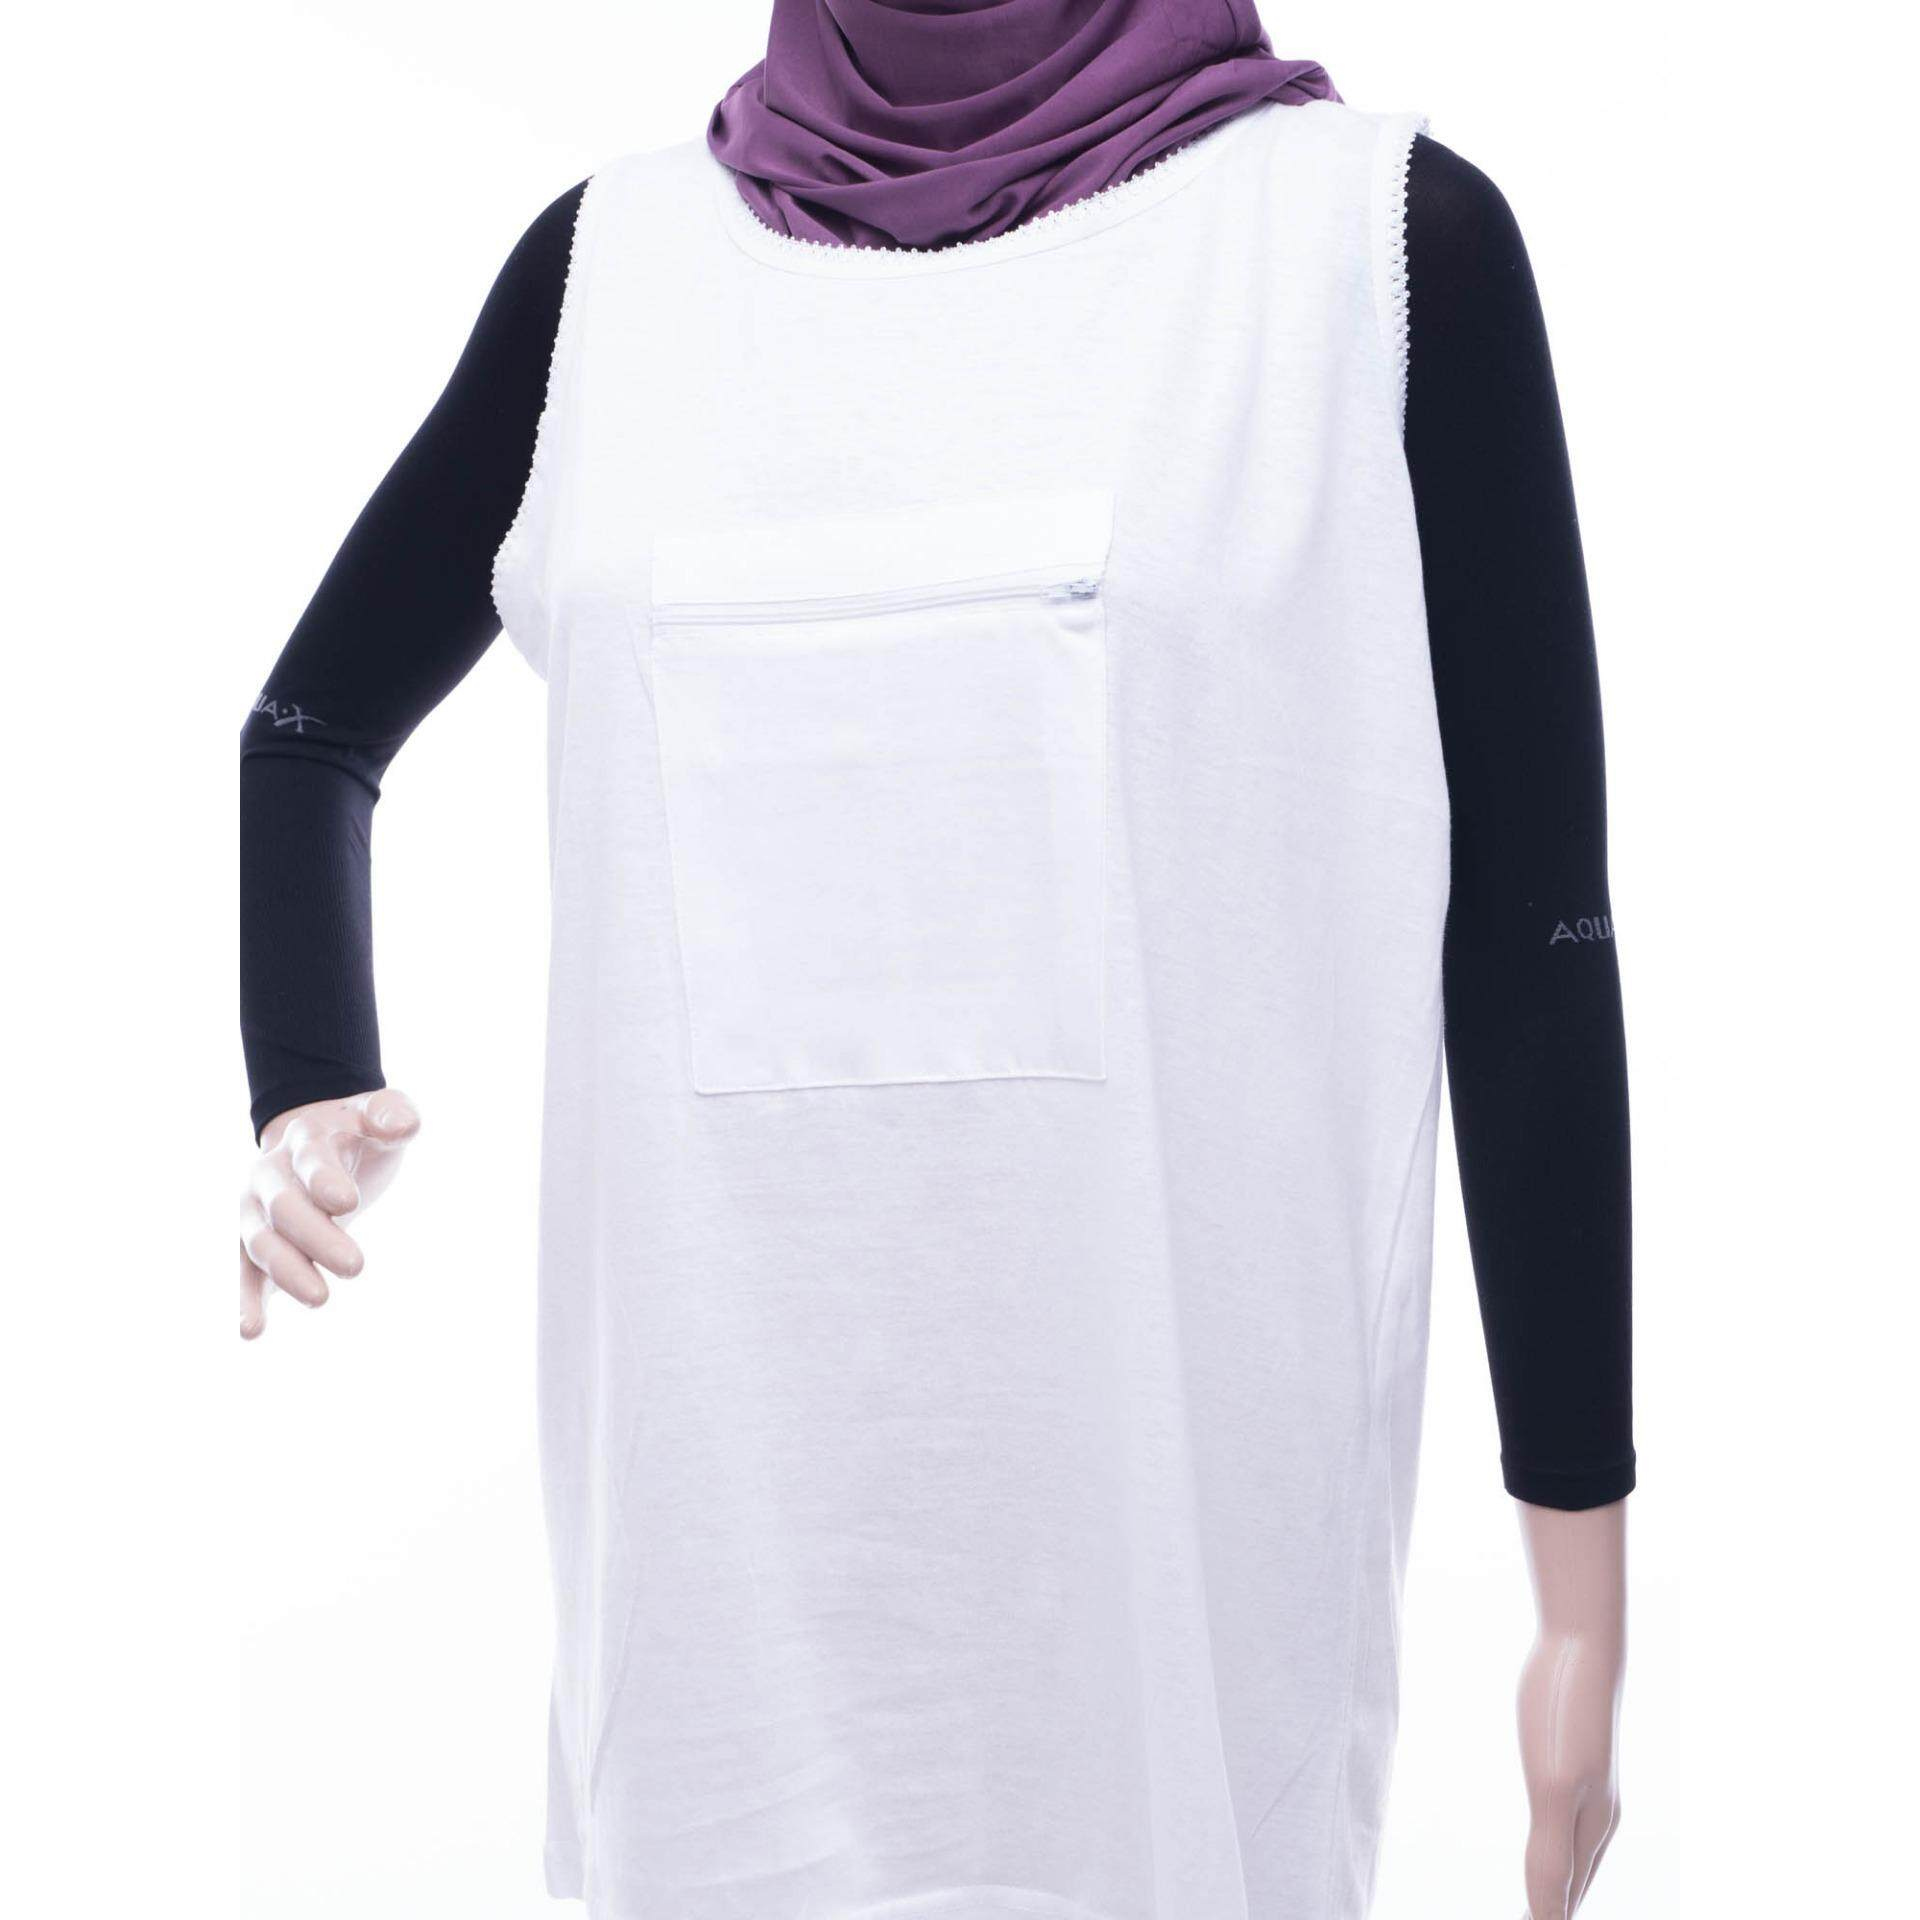 Muslimah Singlet With Zipped Pocket White